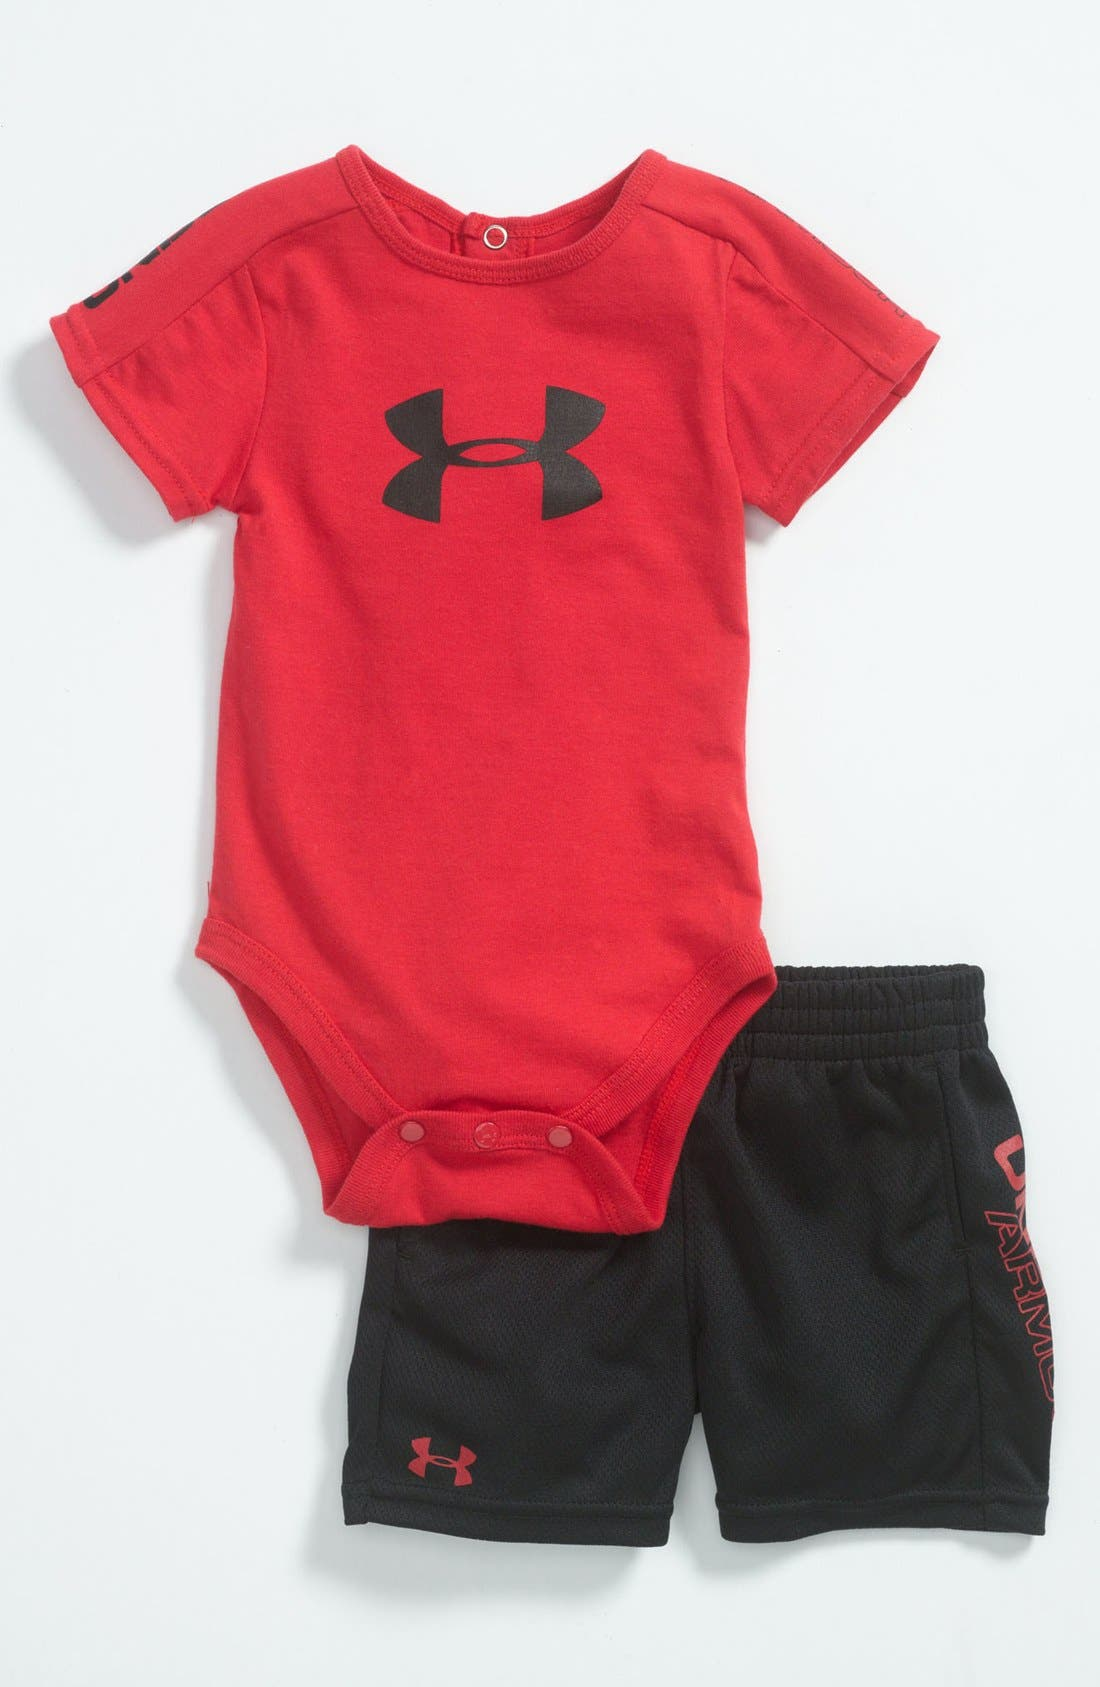 Alternate Image 1 Selected - Under Armour 'Integrity 2.0' Bodysuit & Shorts (Baby)